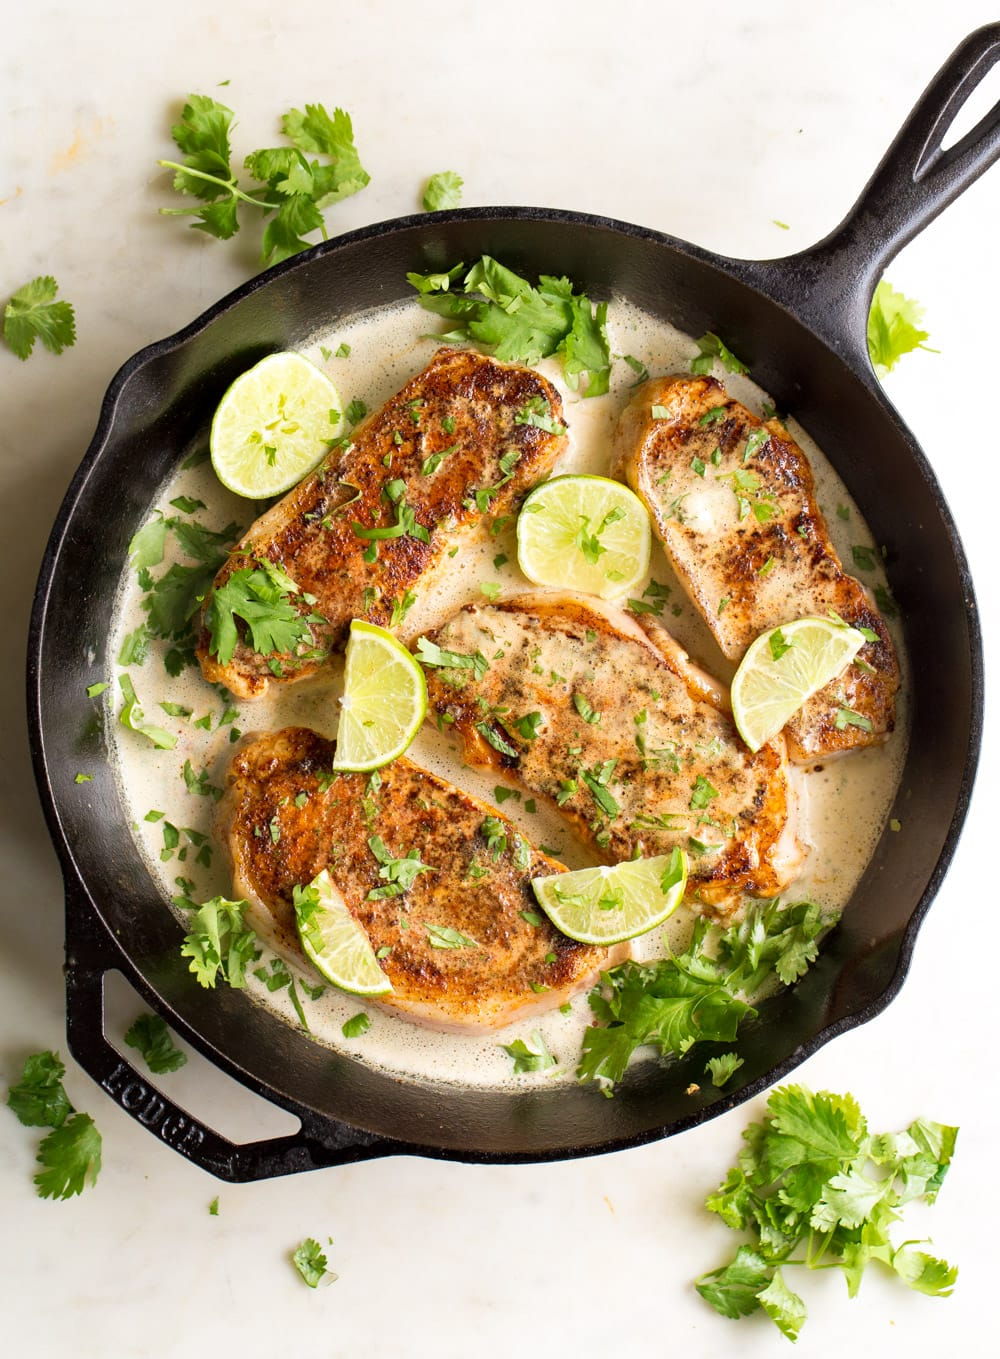 Pork chops in a creamy chipotle sauce in a cast iron skillet with lime wedges.